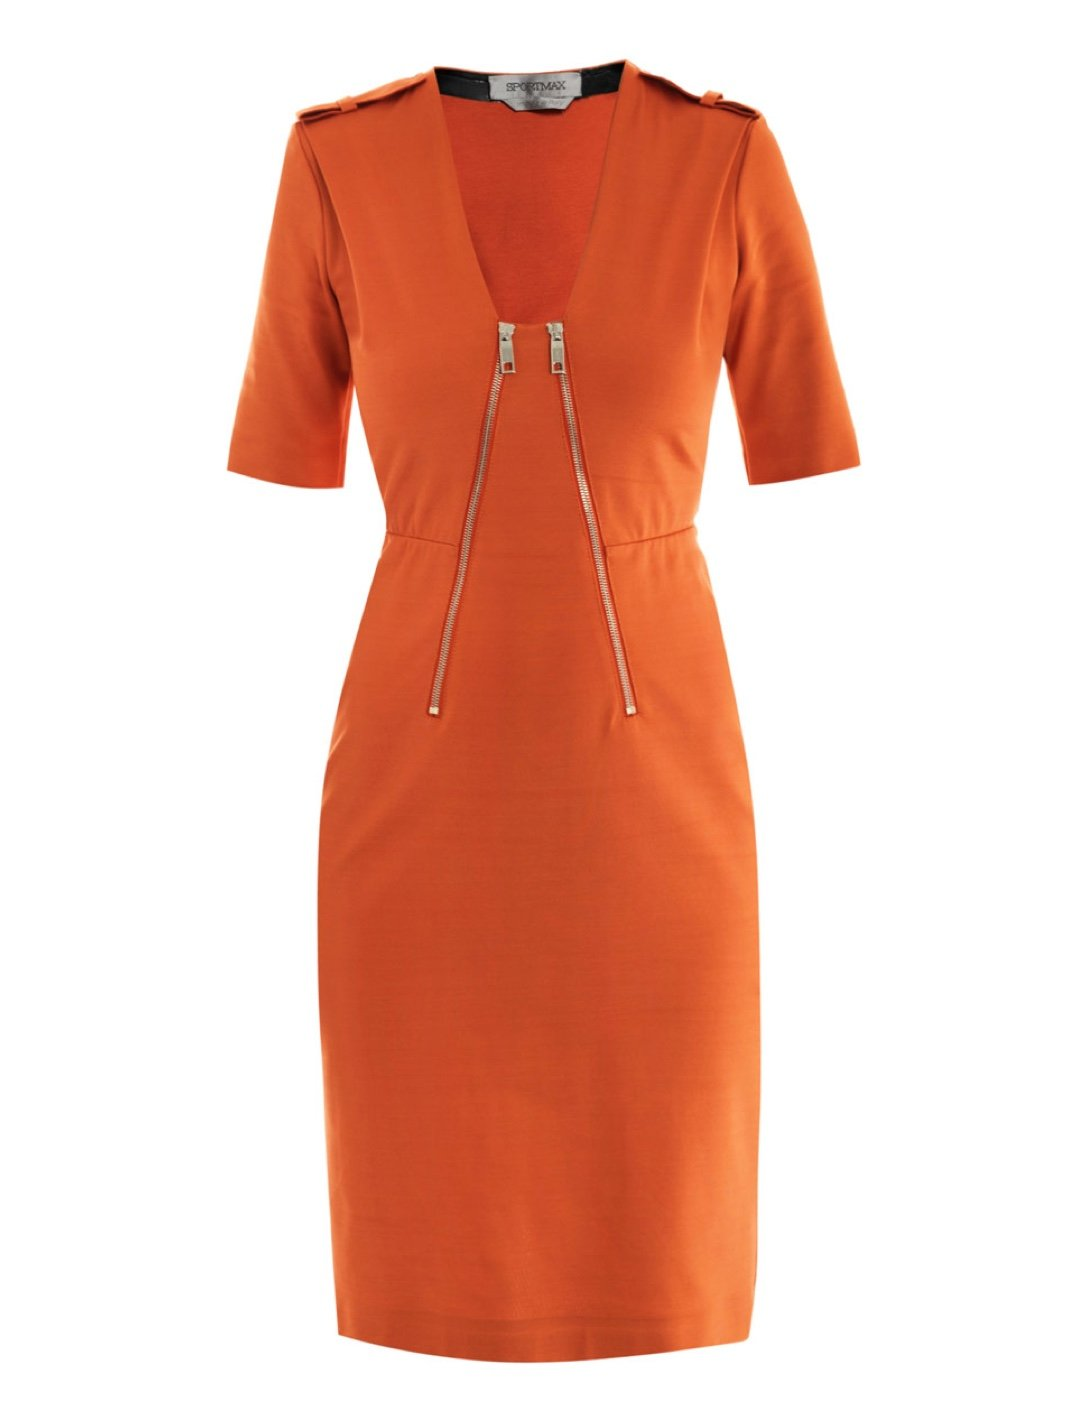 Apuania Jersey Zip Sheath Dress - The Bobby Boga